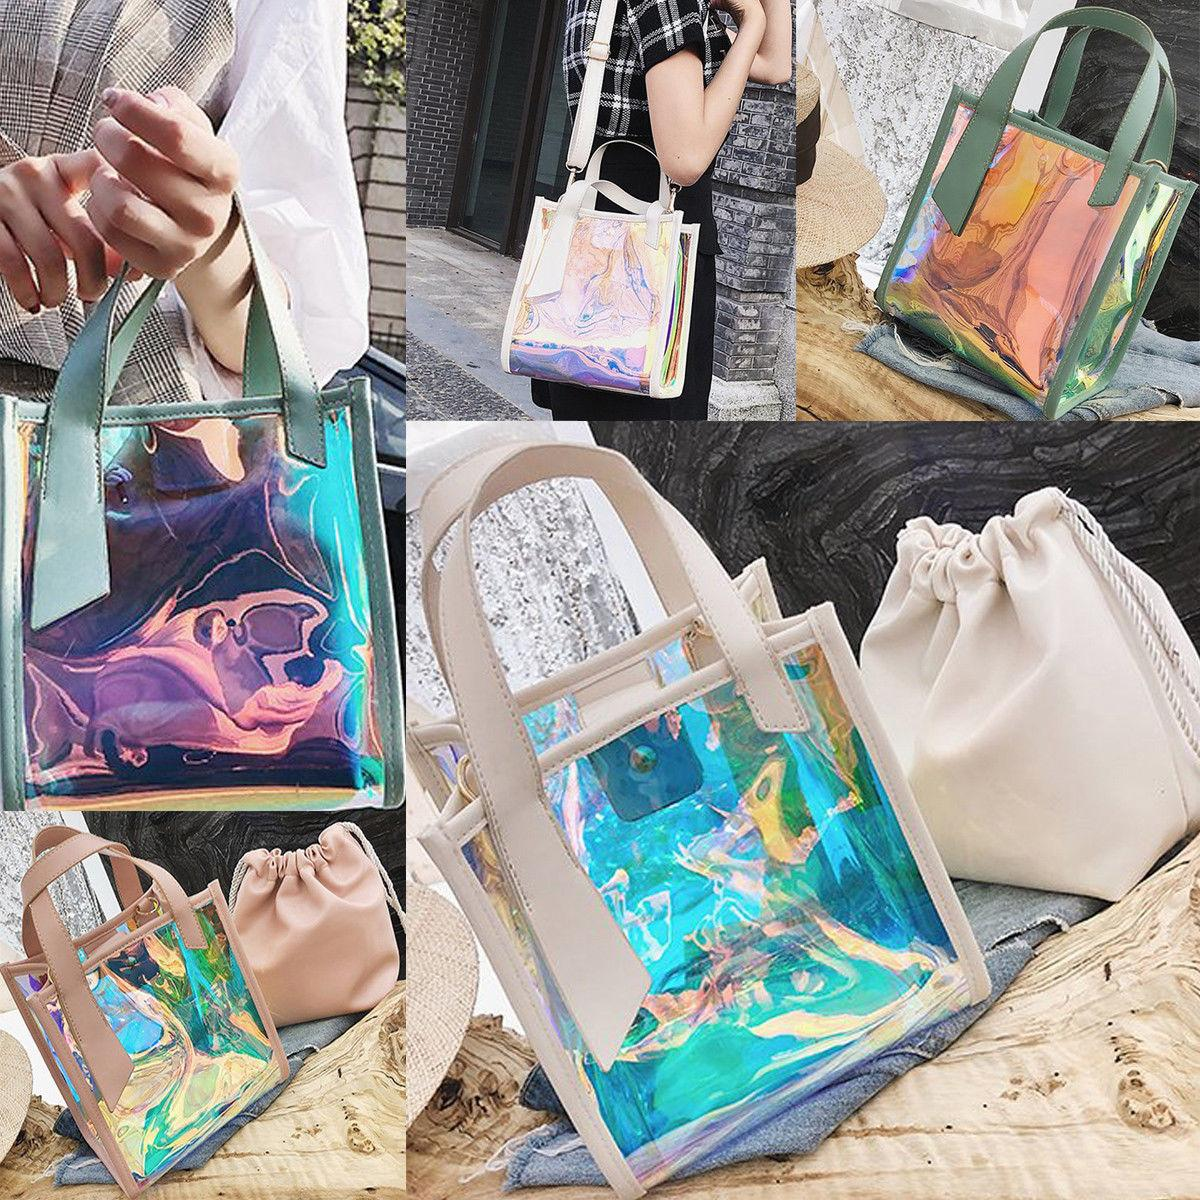 dcd7e91ae Womens Laser Jelly Holographic Bag Clear Transparent Small Tote Hologram  Handbag Purse Laser Cross Body New Style FFA322 Large Handbags Black  Leather ...